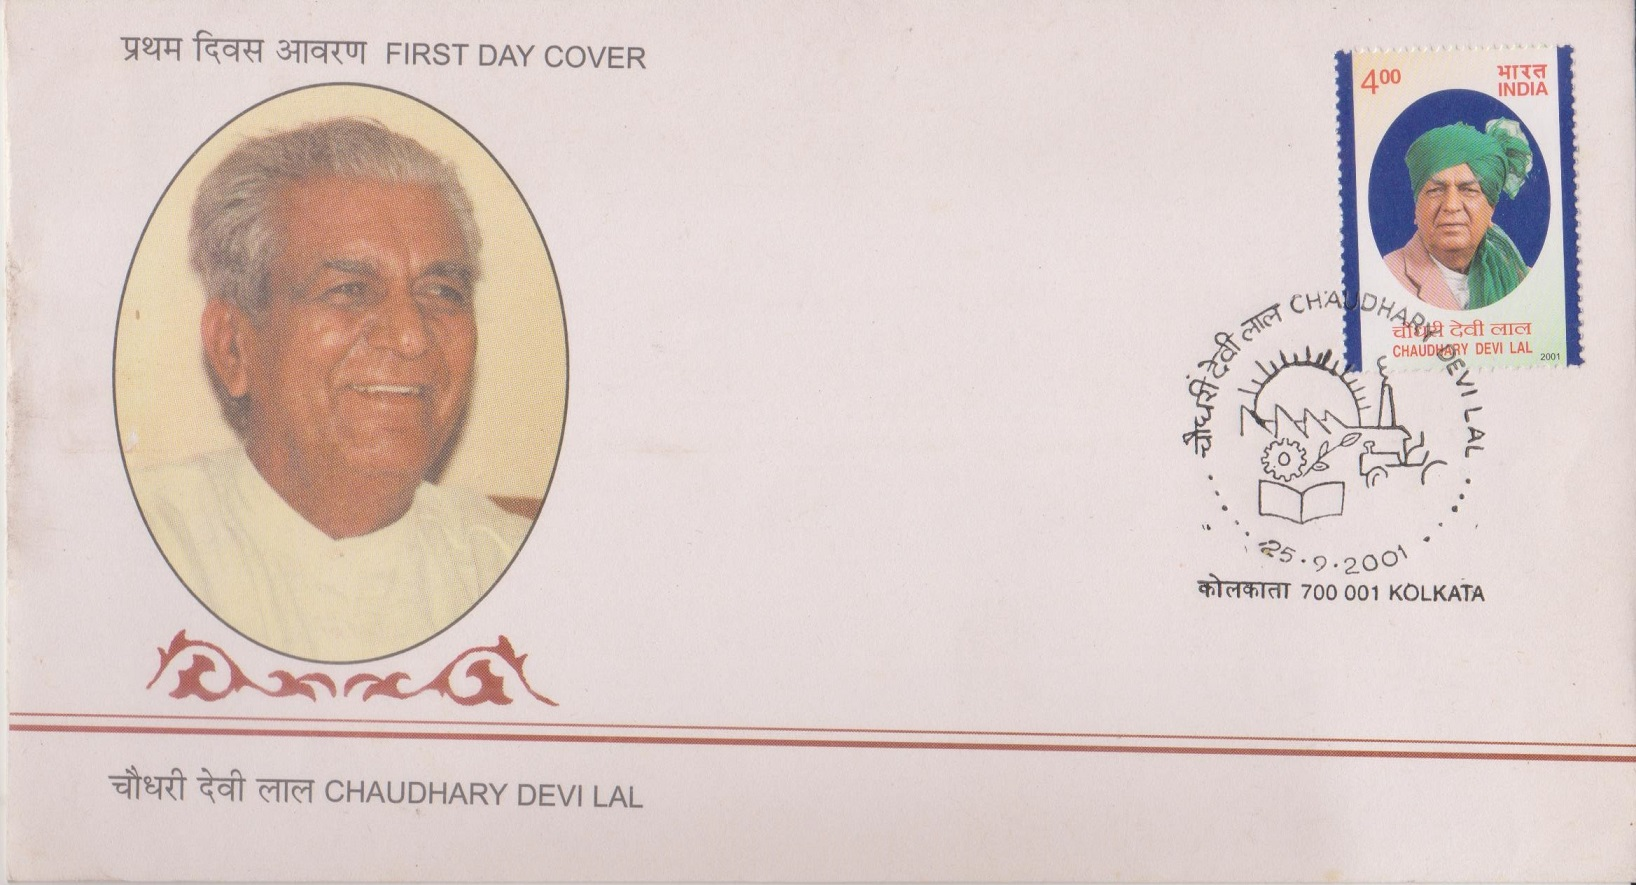 6th Deputy Prime Minister of India & 6th Chief Minister of Haryana